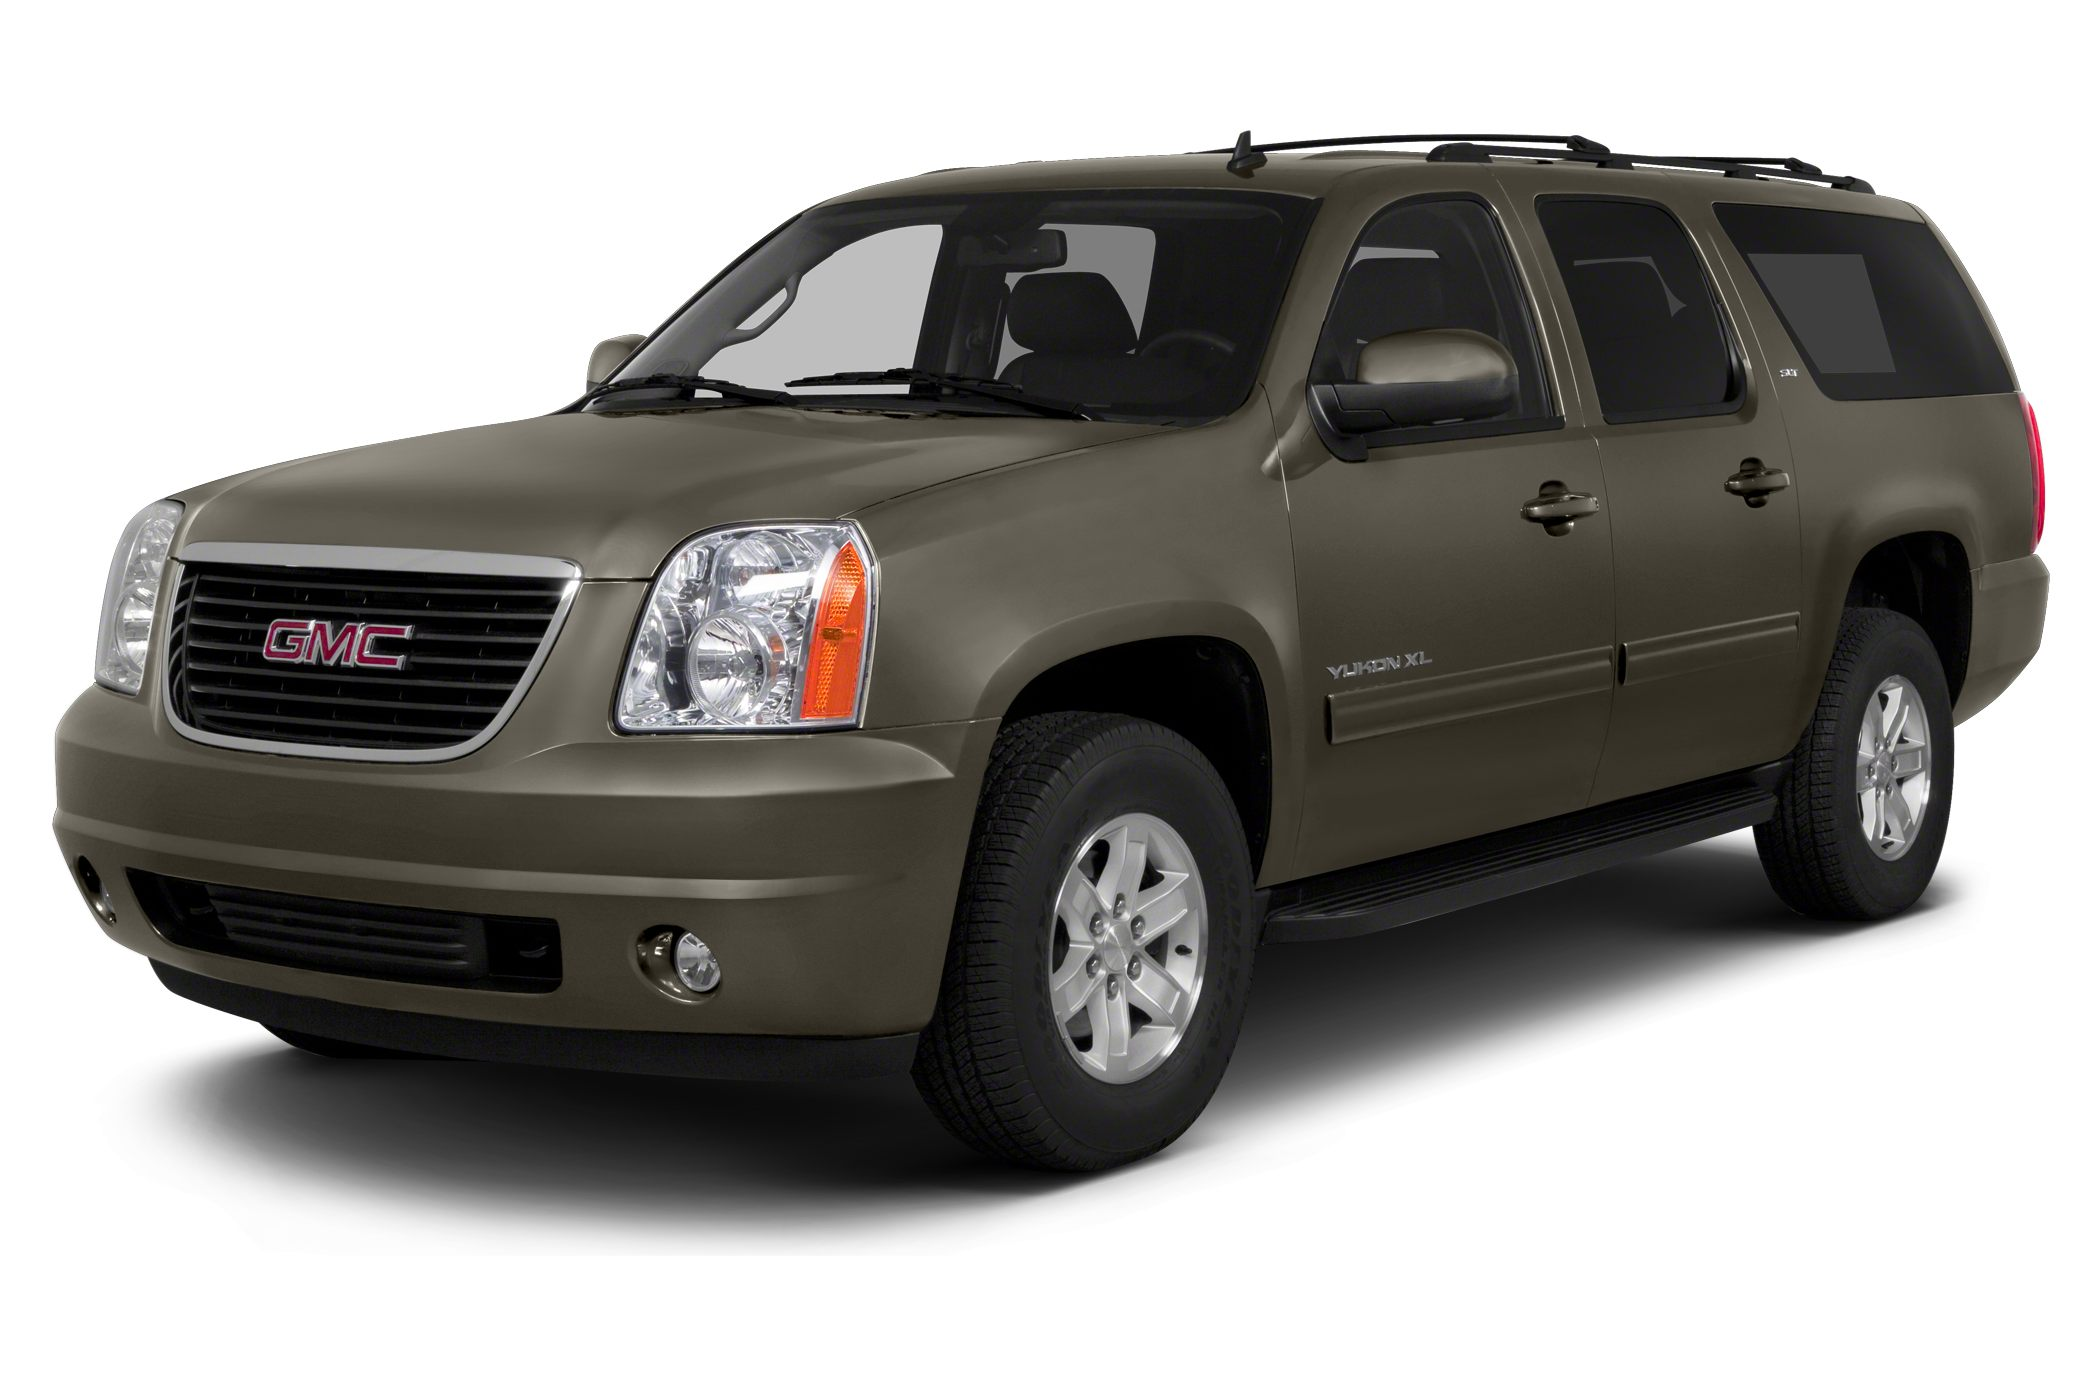 2012 GMC Yukon XL 1500 SLT SUV for sale in Fayetteville for $26,415 with 74,890 miles.